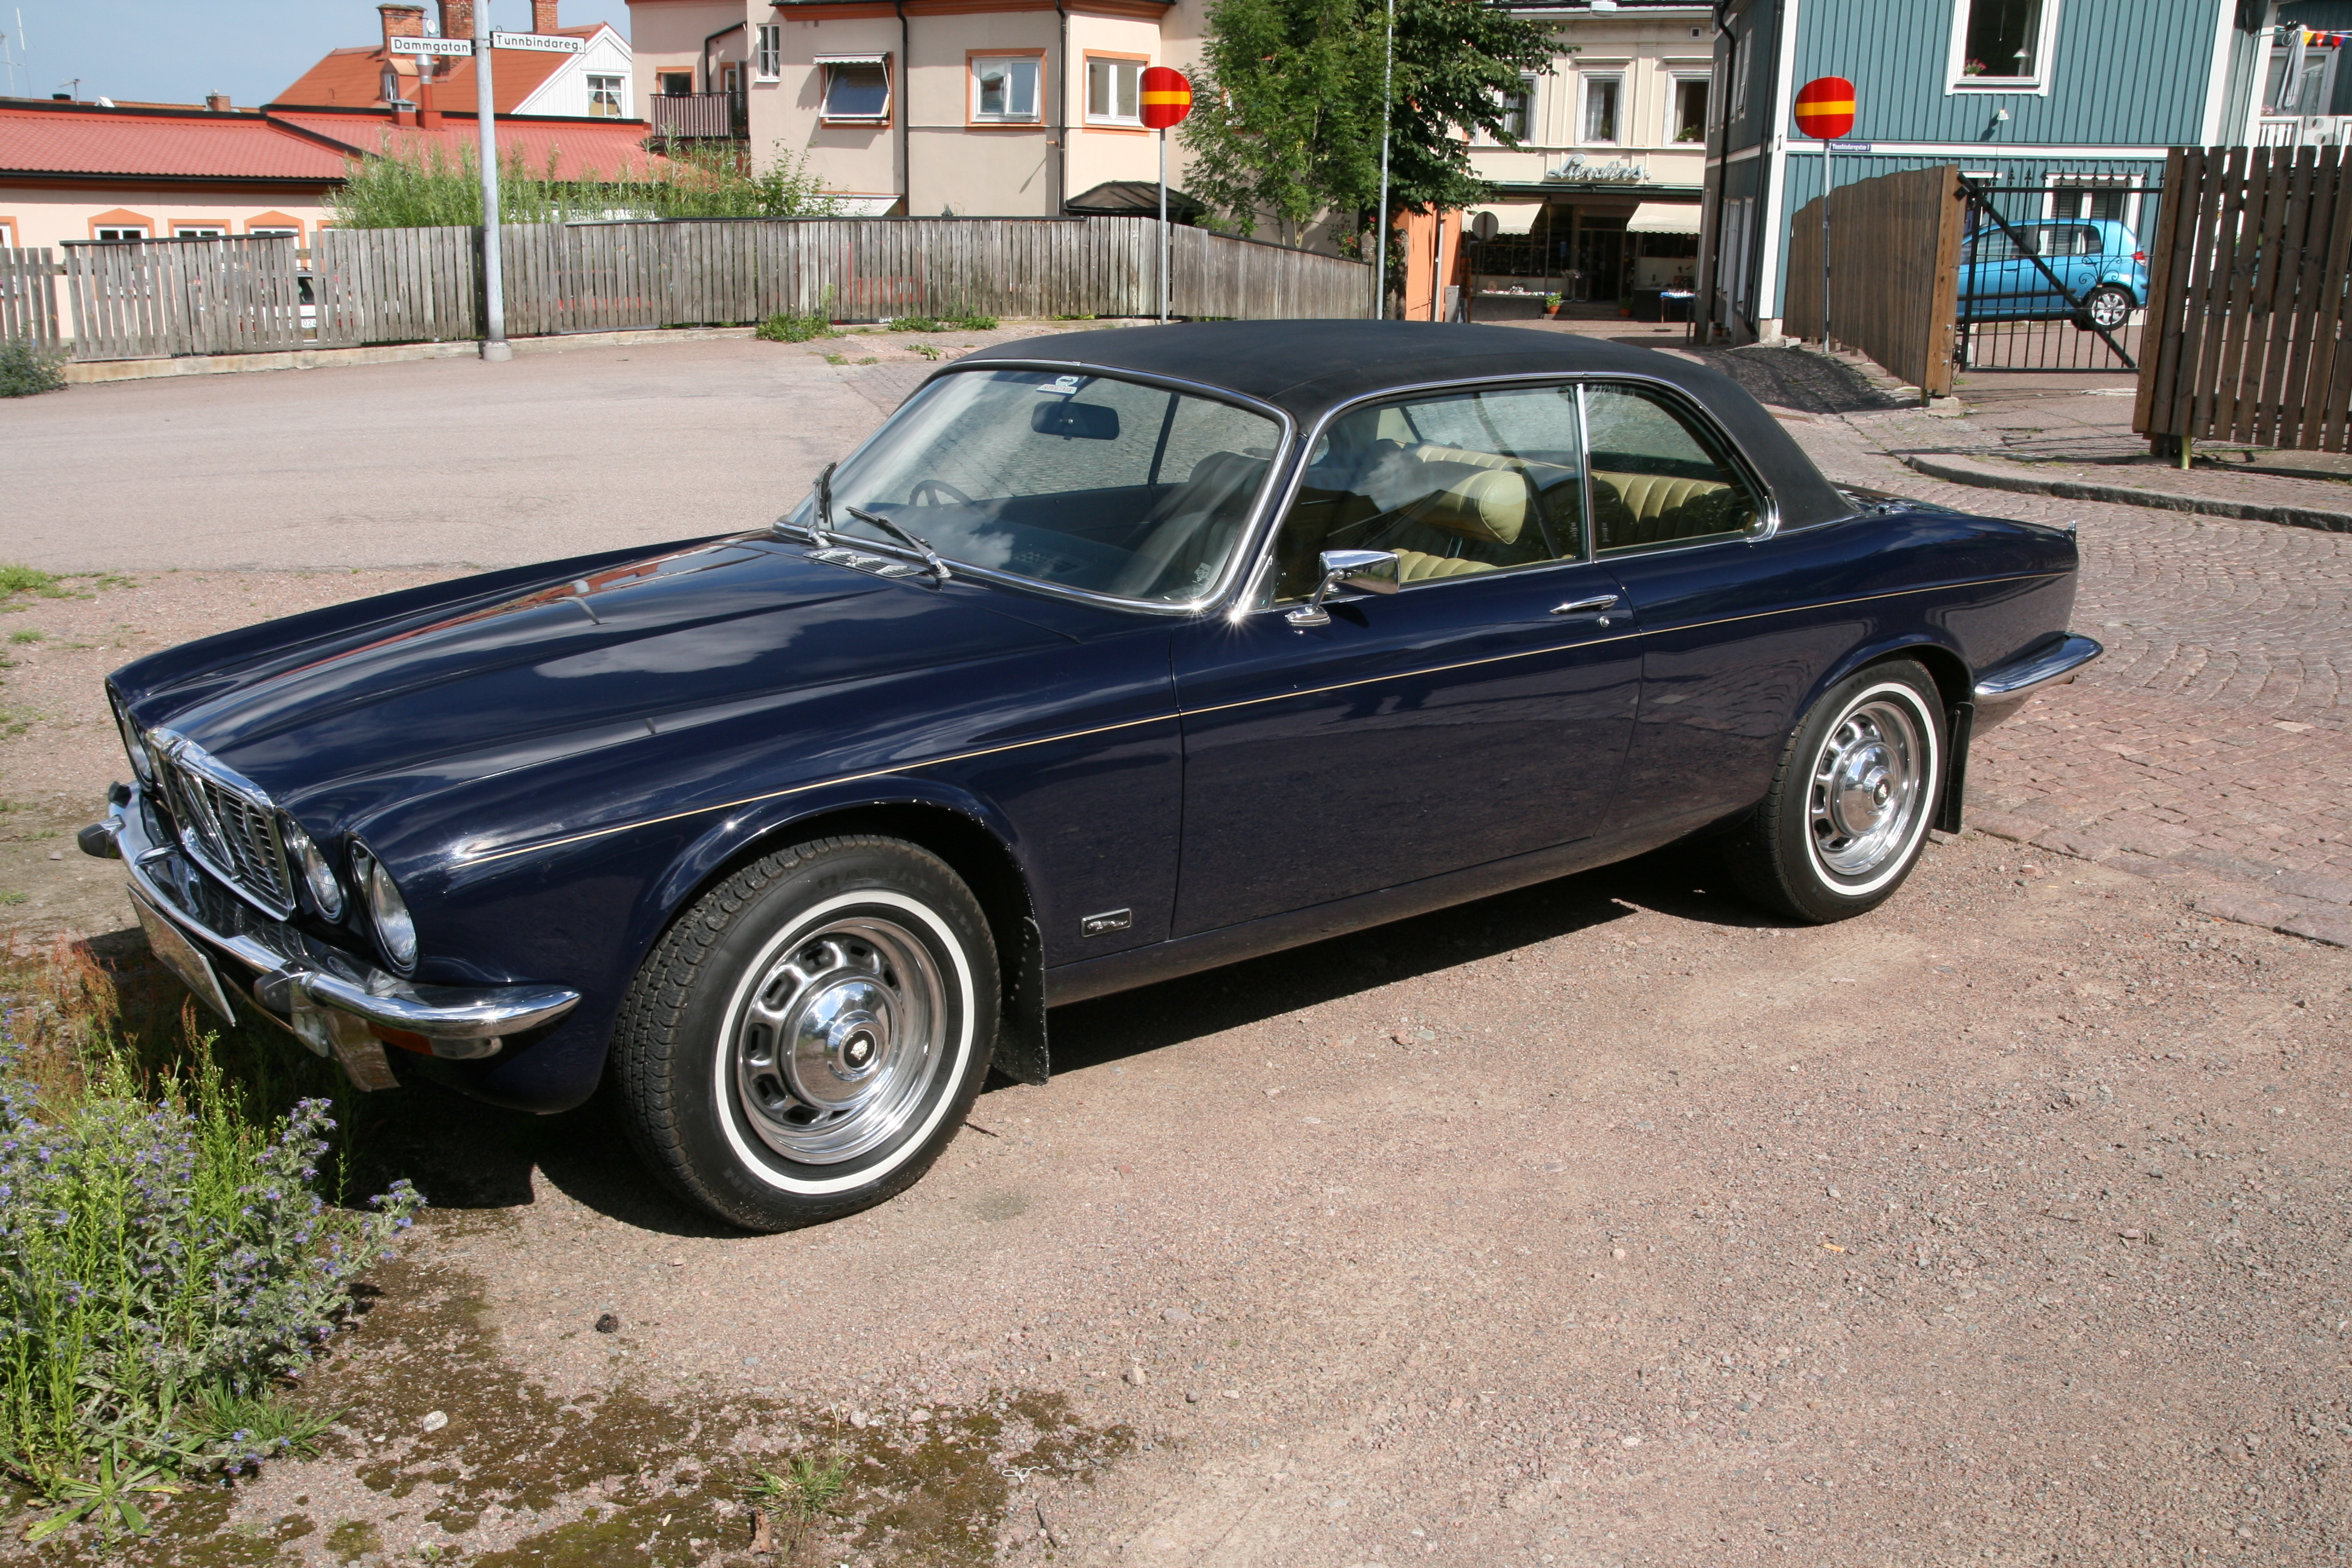 filejaguar xj 42c 1975 front leftjpg